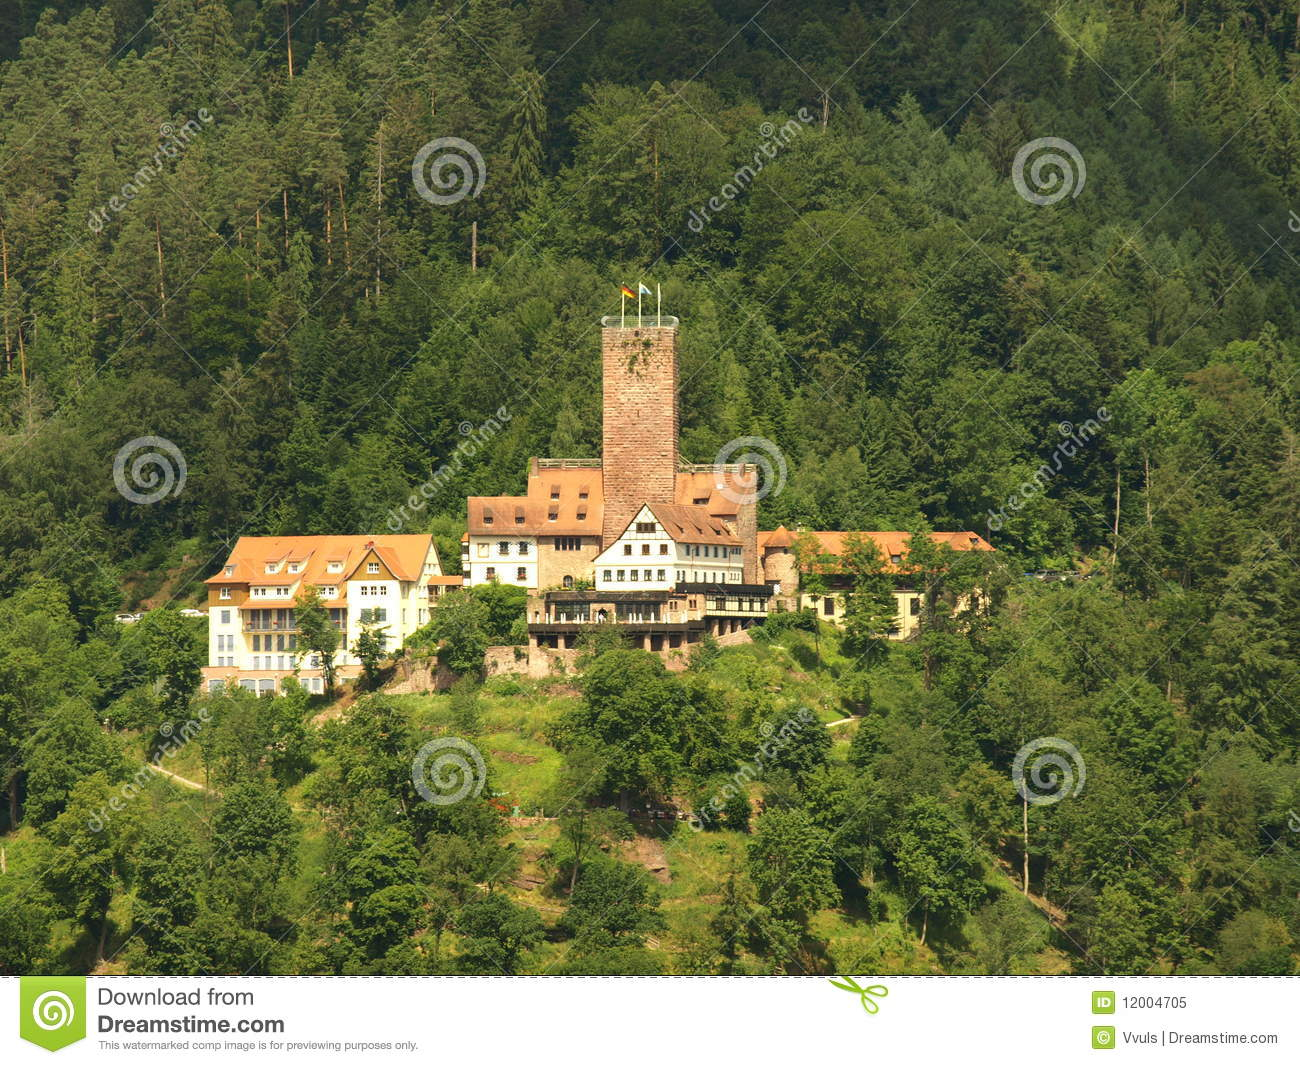 Bad Liebenzell castle stock image. Image of spruce, castle